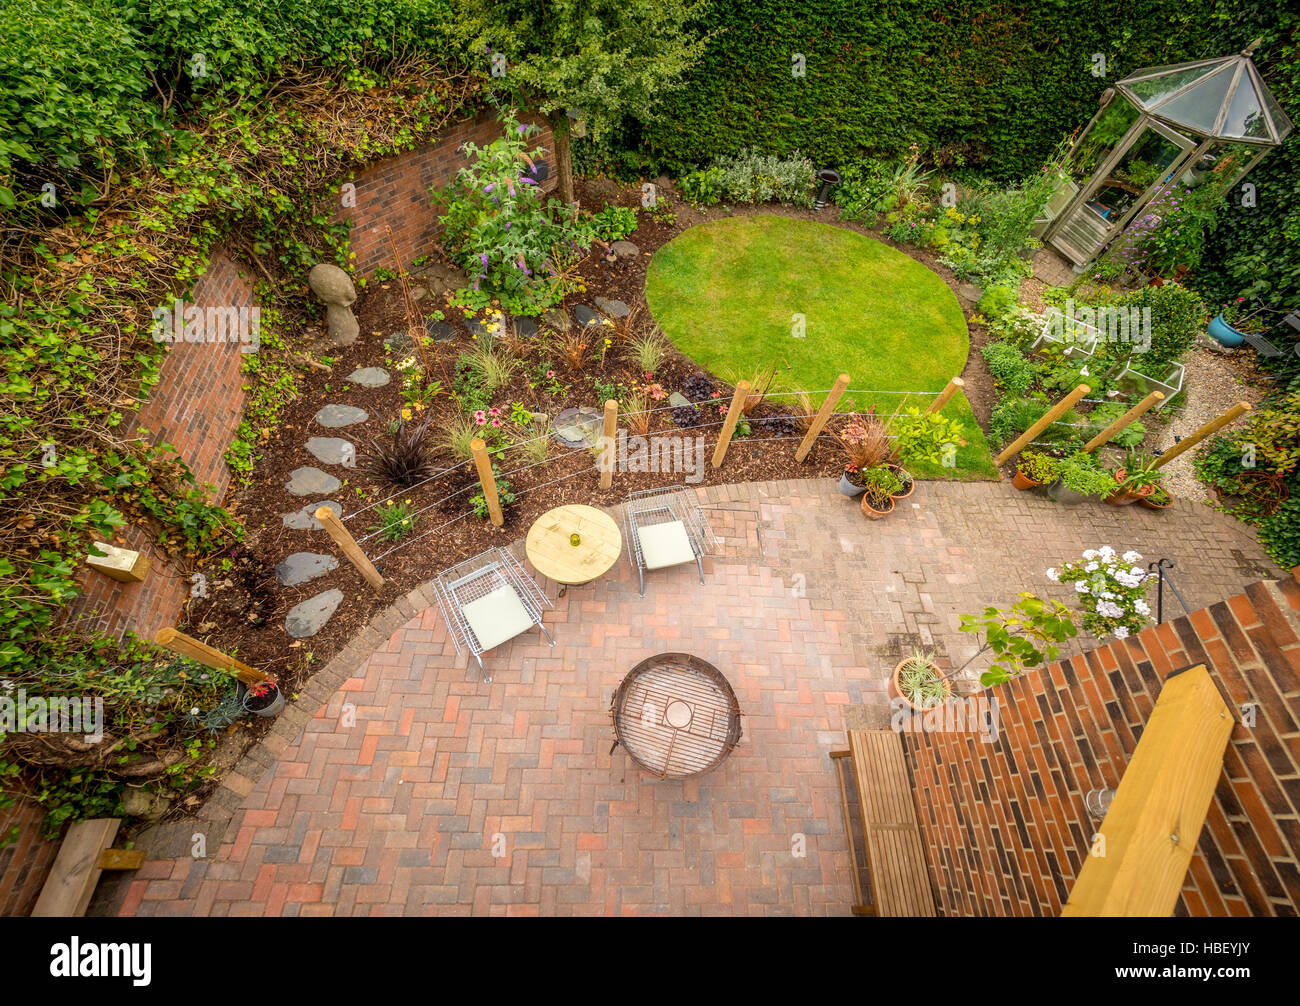 Modern Garden Seen From Above With Circular Lawn And Block Paved Patio